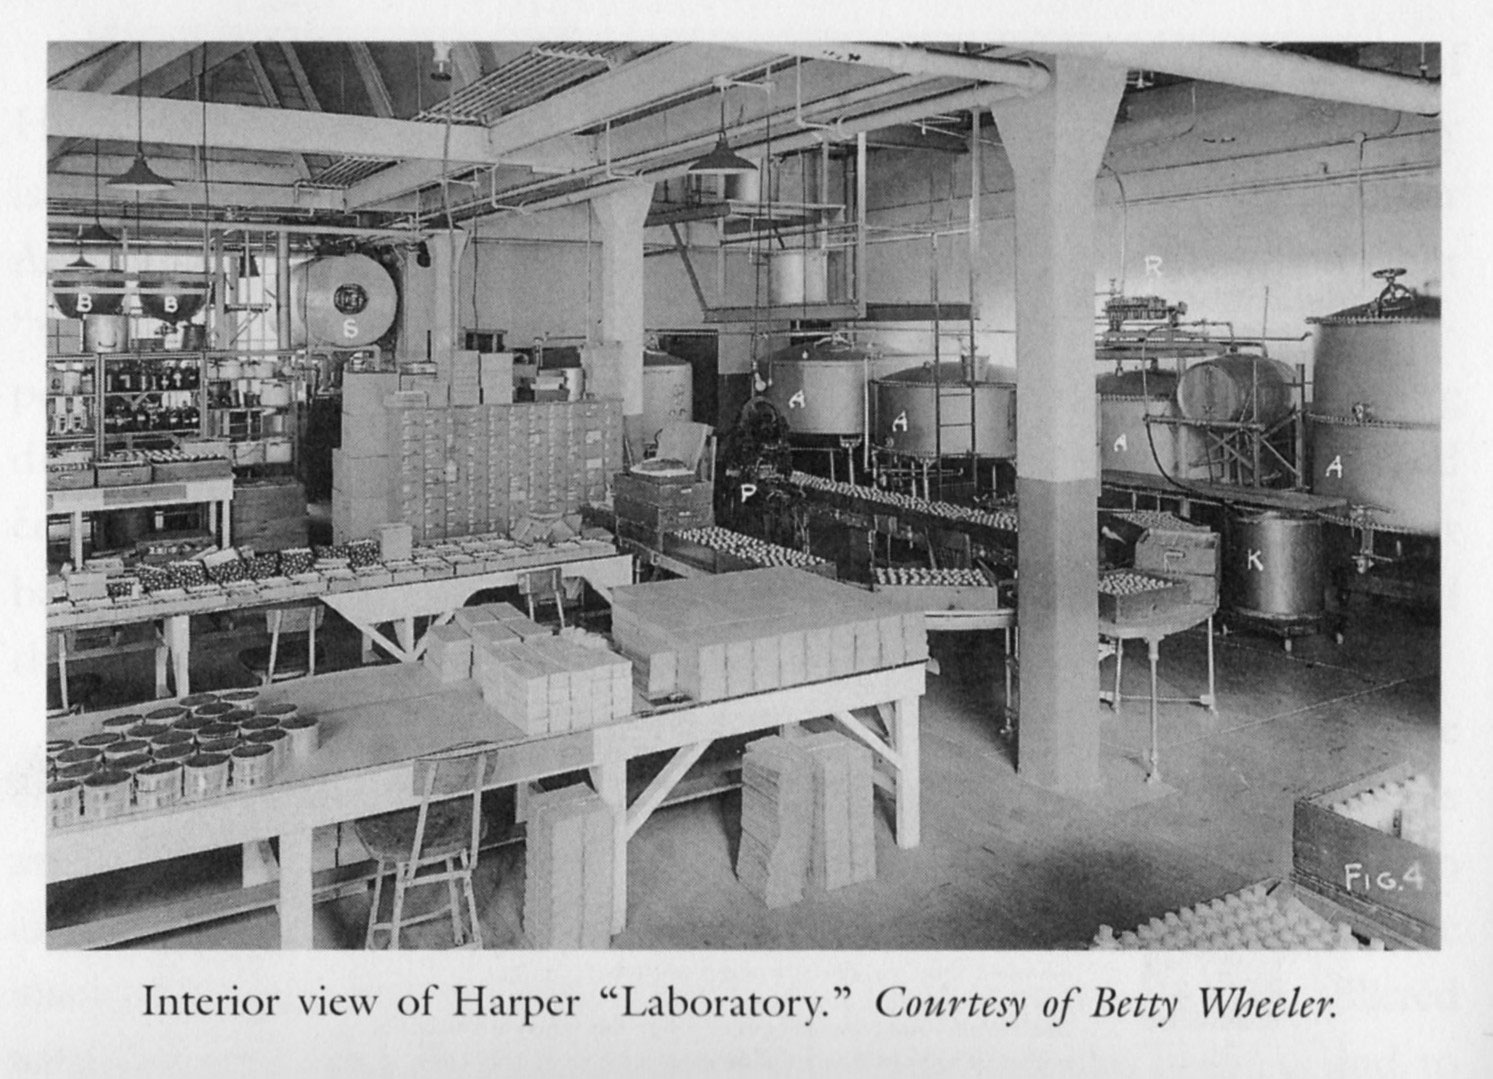 An old photo showing Harper's laboratory that is now filled with tires. [IMAGE: From the book, 'Martha Matilda Harper and The American Dream: How One Woman Changed The Face of Modern Business' by Jane R. Plitt]